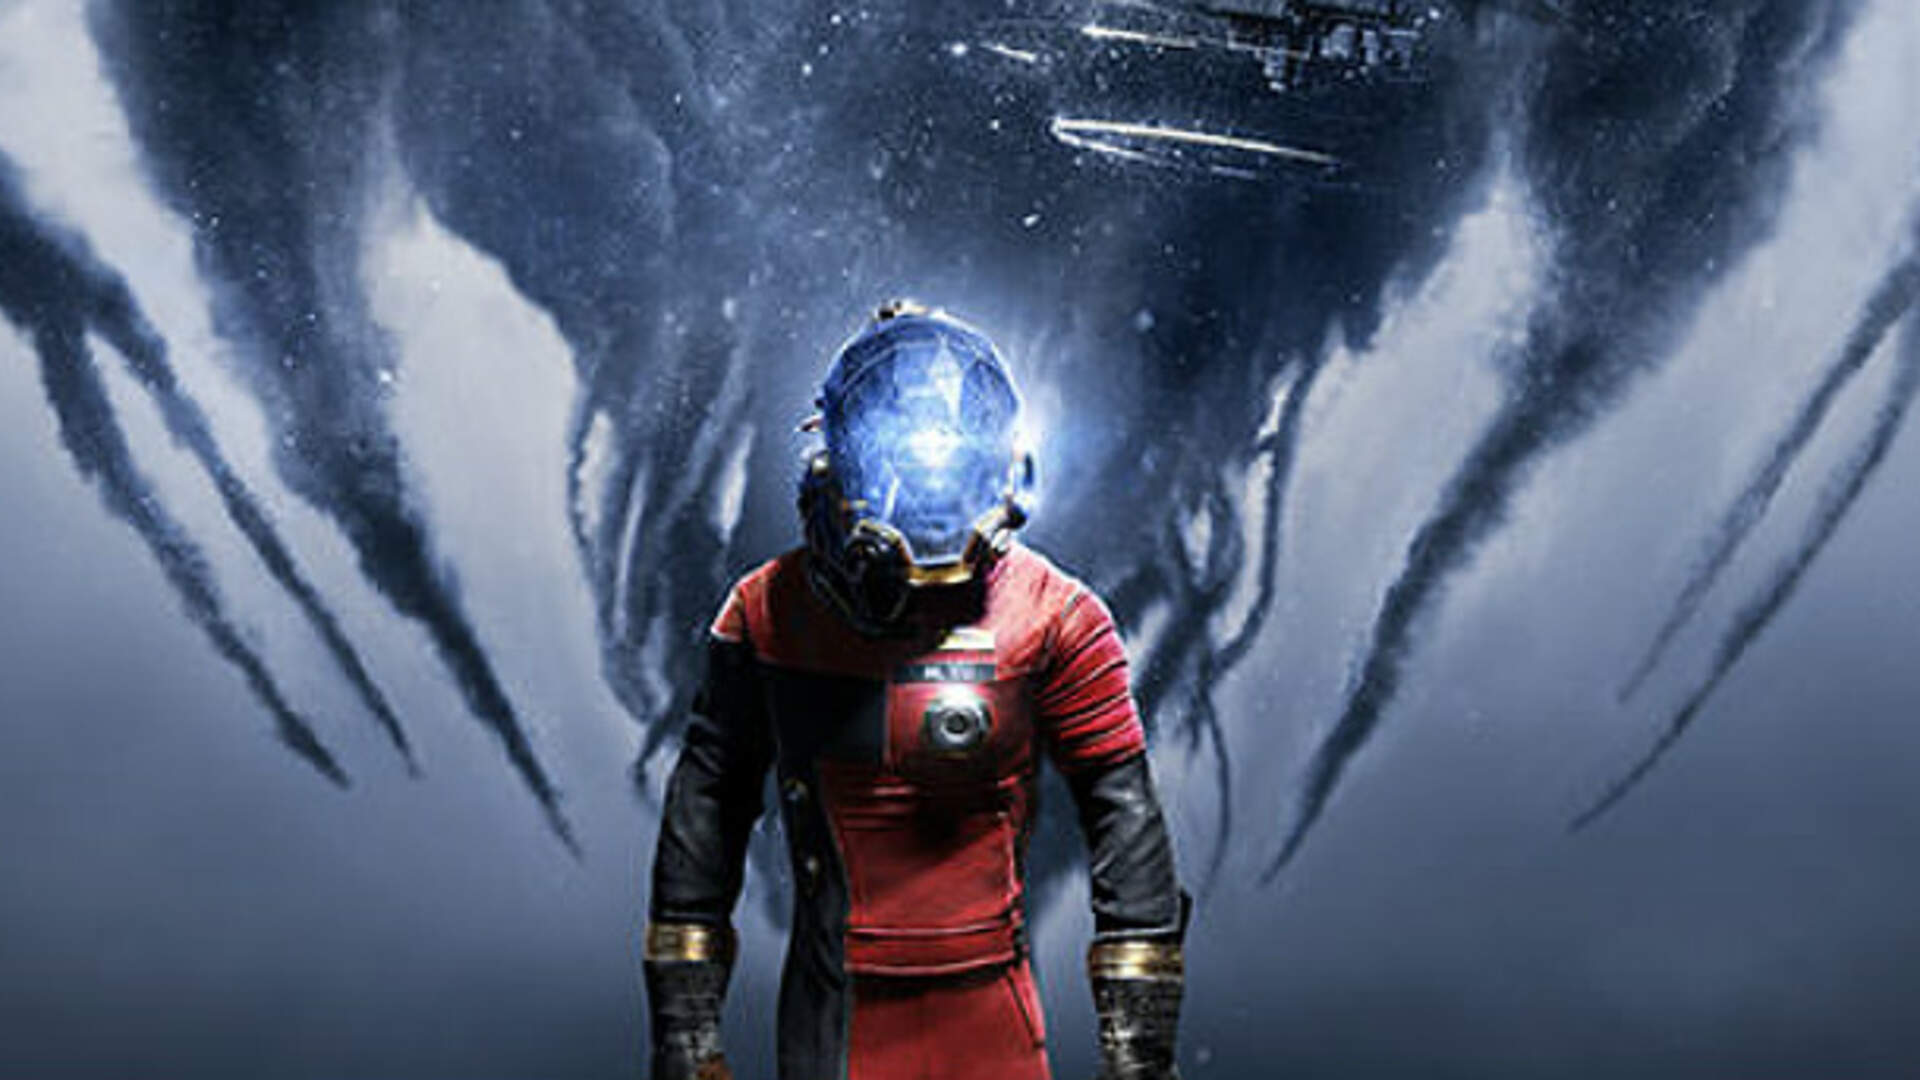 Prey Doesn't Appear to Support PS4 Pro Despite Claims to the Contrary